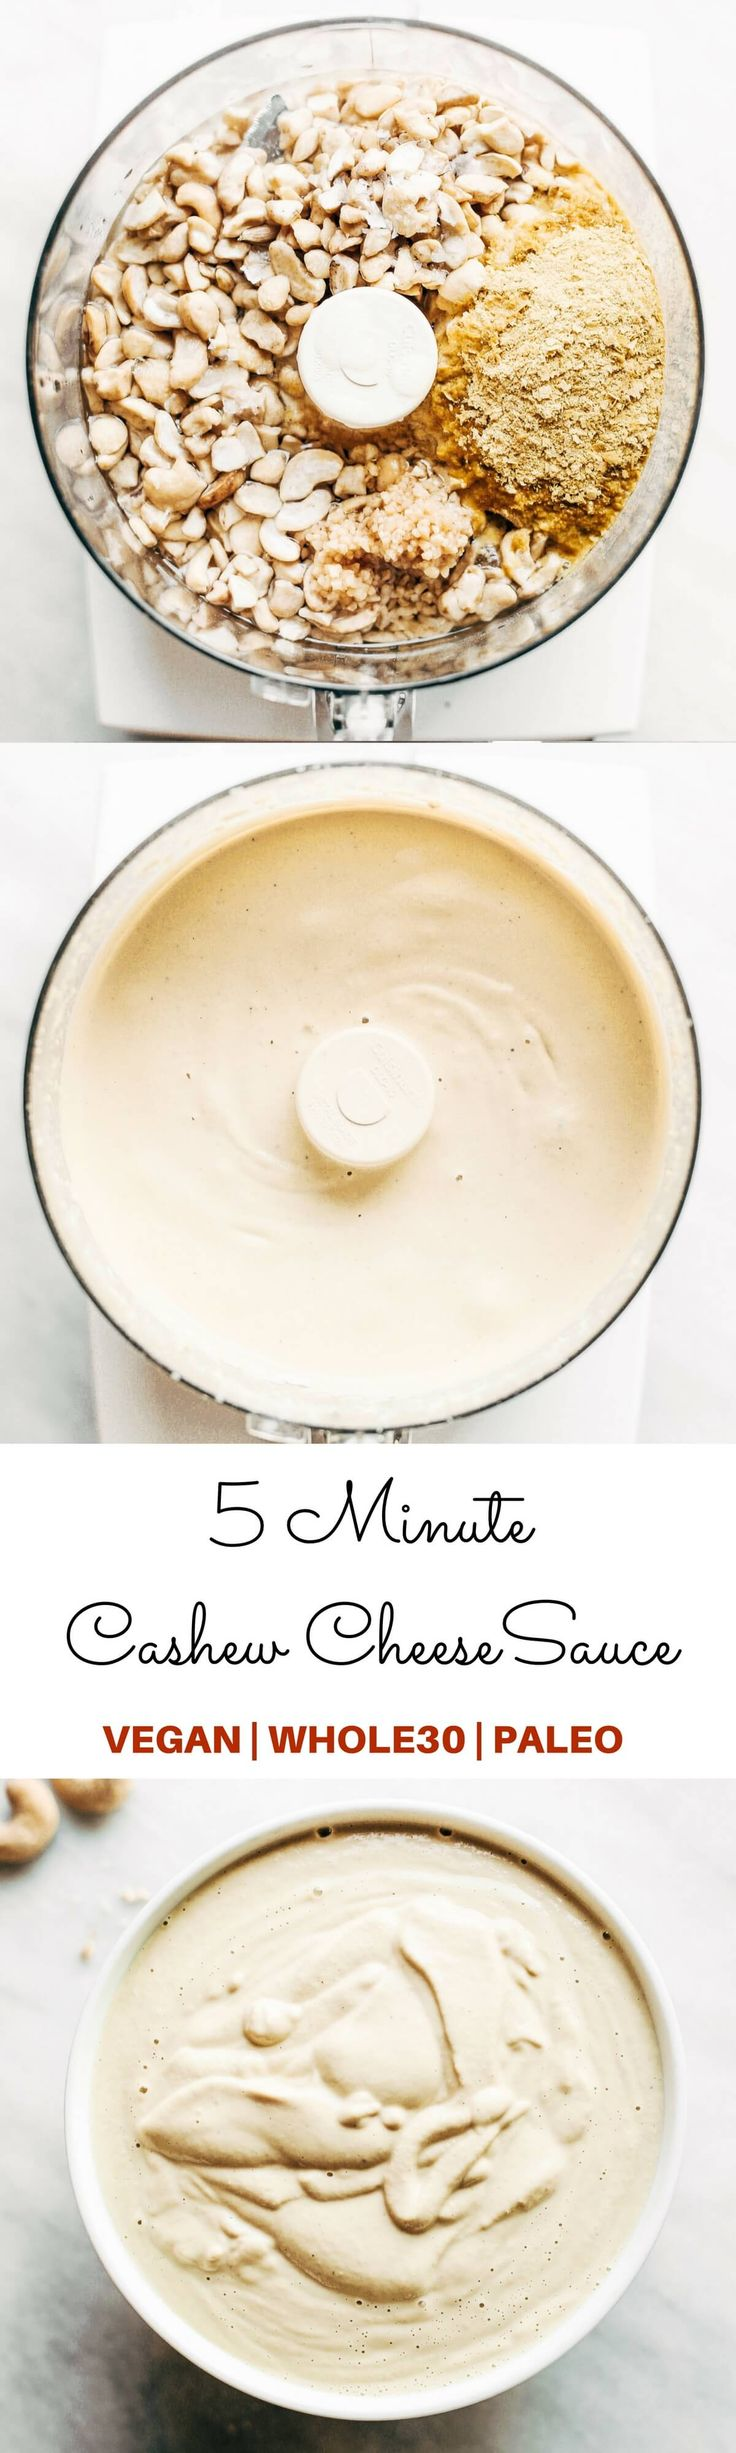 Creamy 5 minute vegan cashew cheese sauce! Whole30, paleo, and dairy free. Whipped smooth, made with raw cashews, and tastes like the perfect cheese dip for vegetables, chips, served over noodles, or licked straight off the spoon! Dairy free cheese. Dairy free Alfredo. Easy Cashew cheese. Homemade cashew cheese. easy vegan paleo cheese recipe. Best Dairy free cashew cheese recipe.